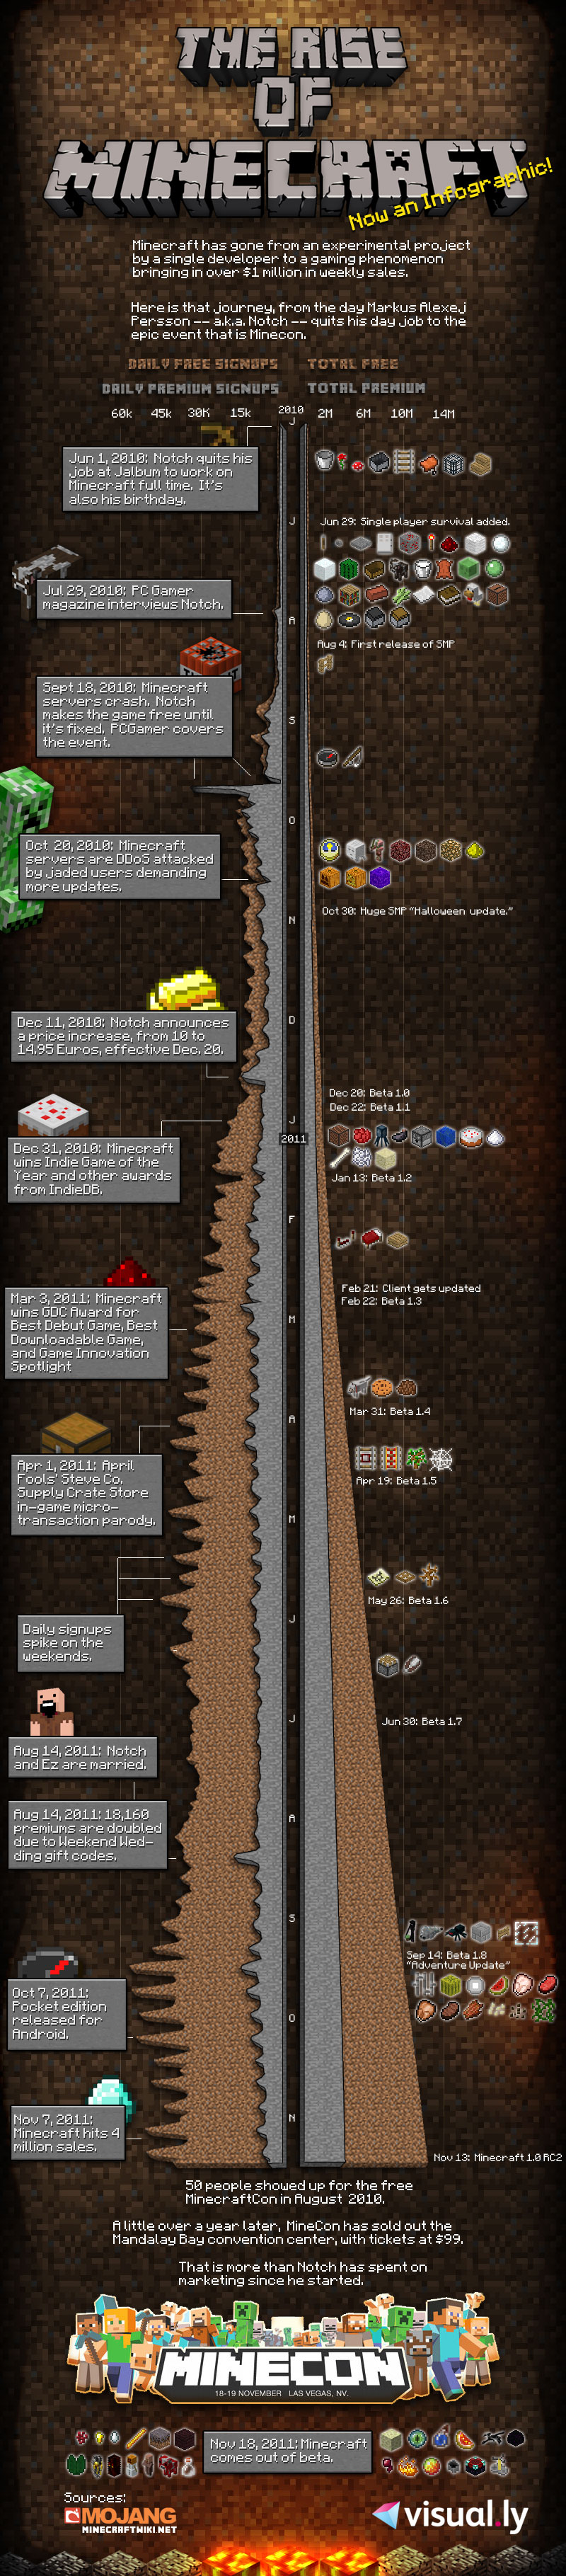 The Rise Of Minecraft [Infographic]